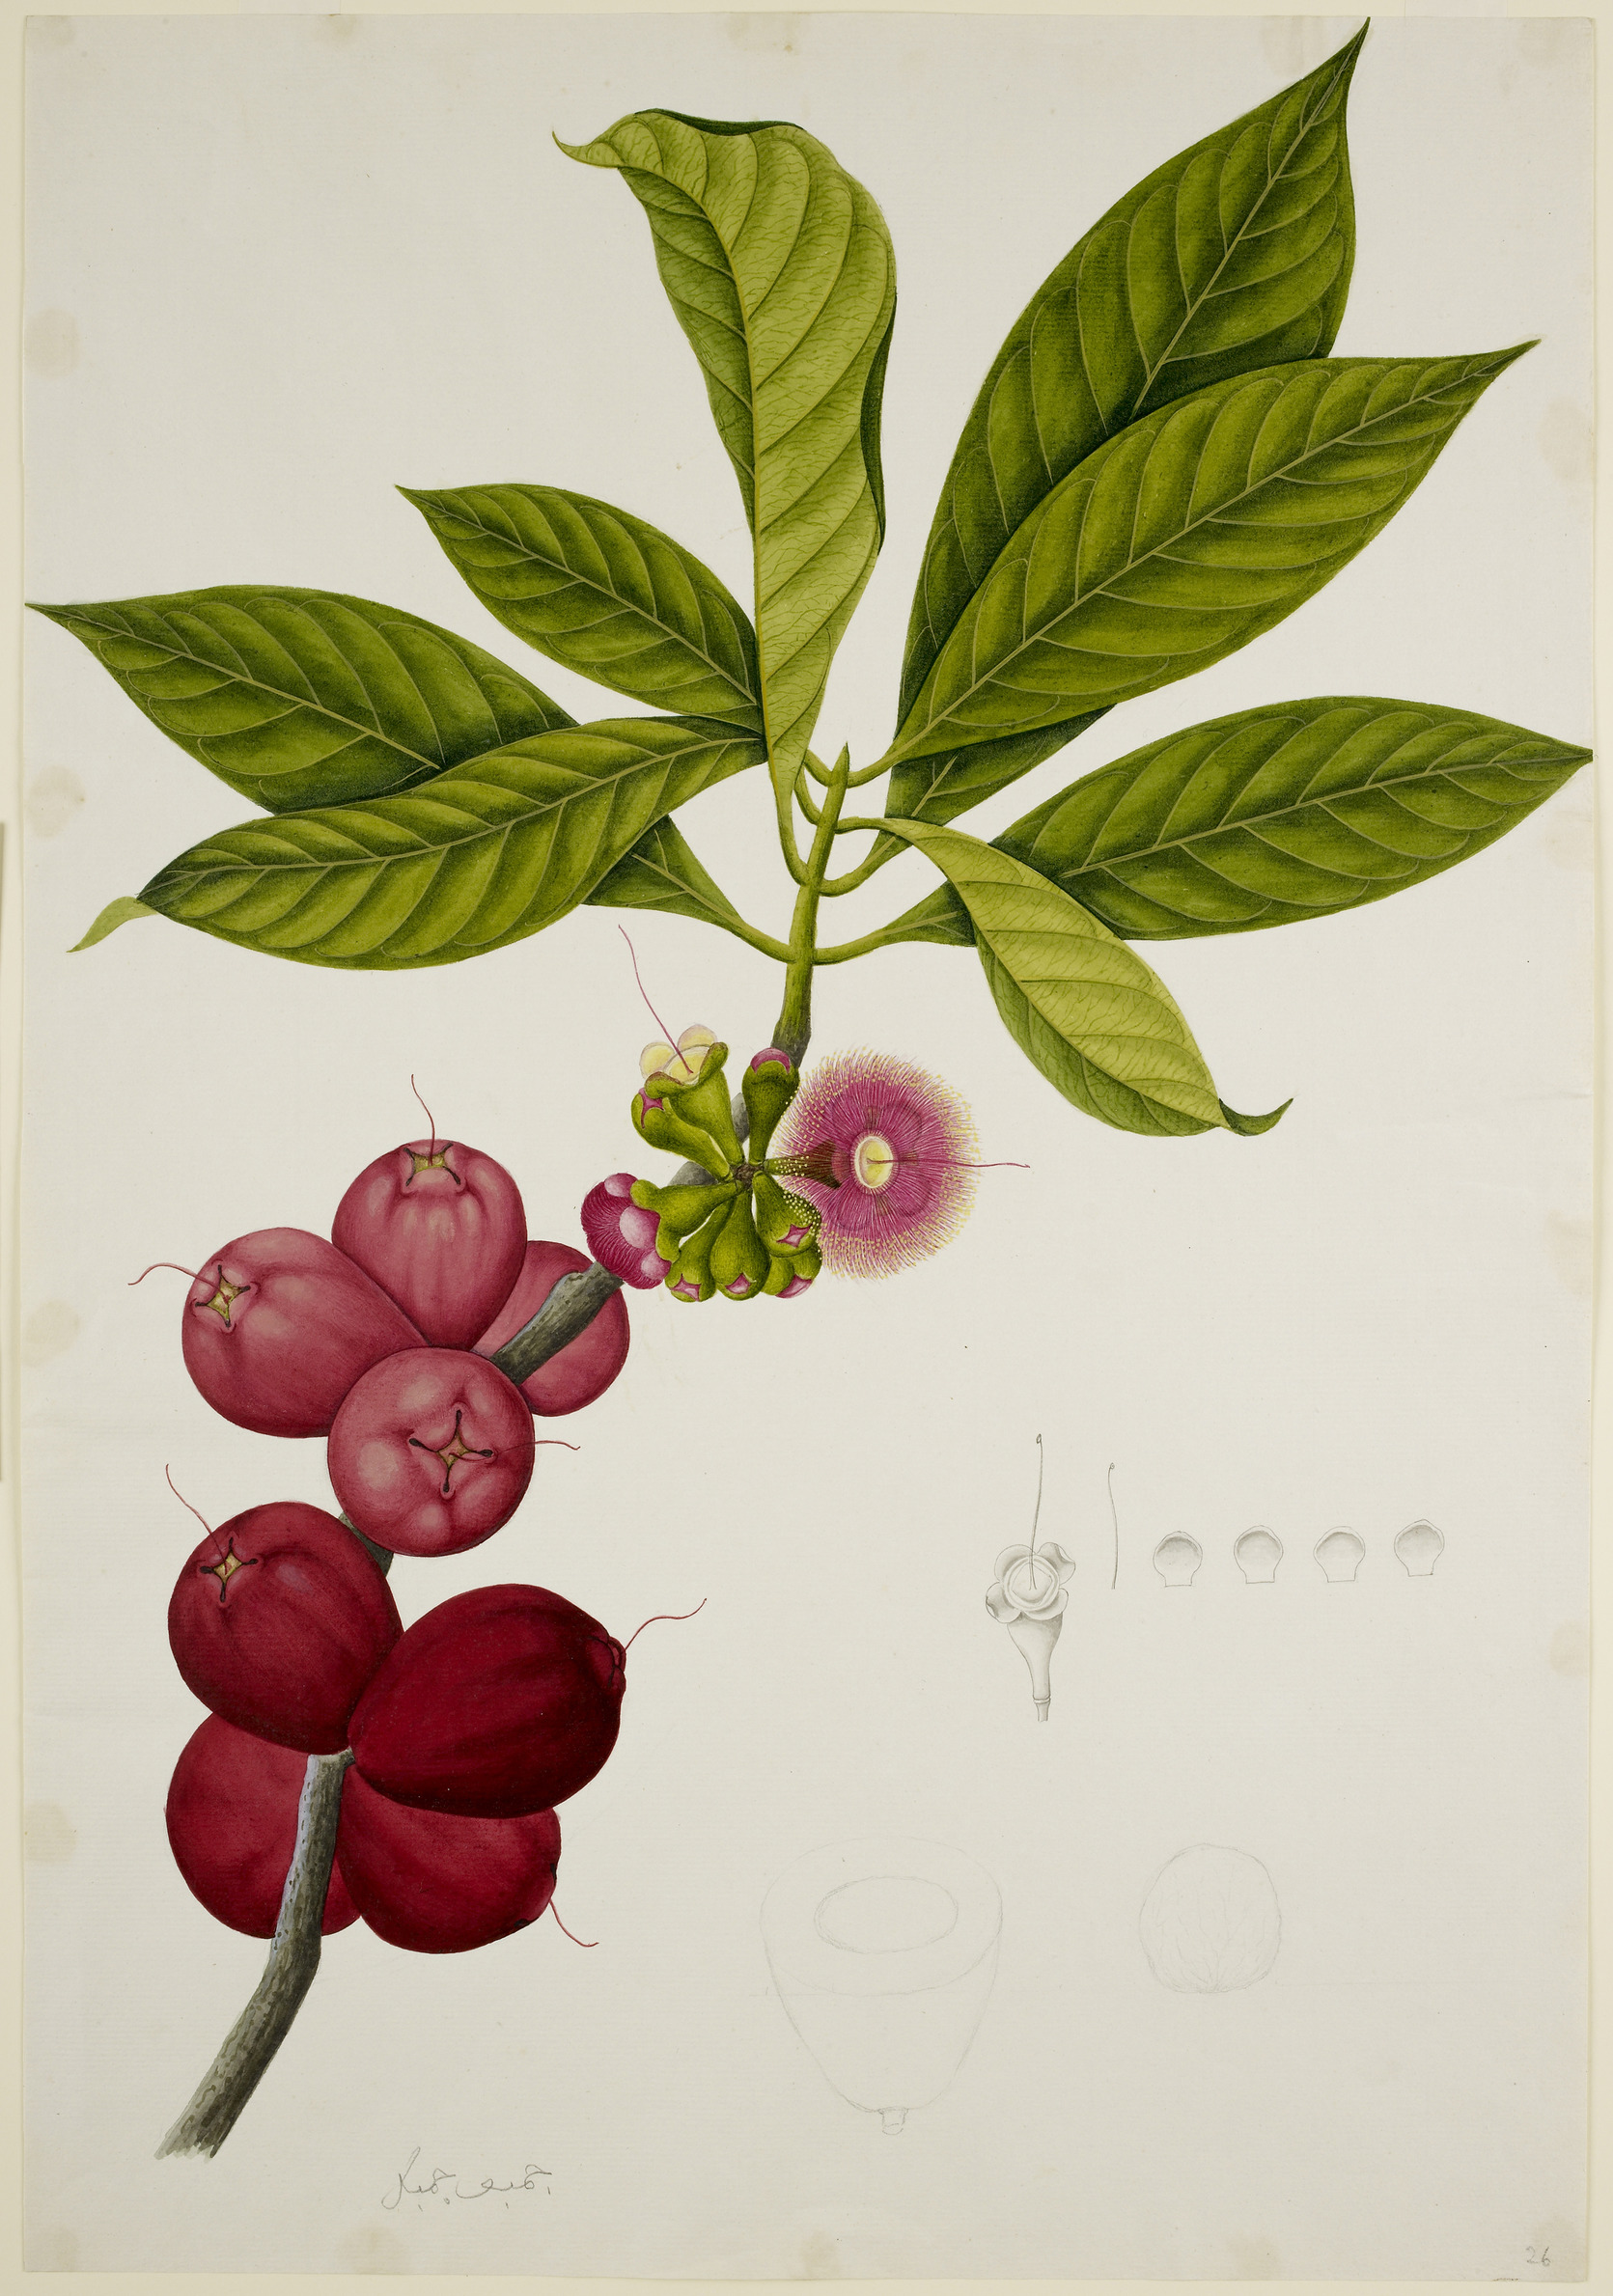 File:Malay Apple - 40 drawings of plants at Bencoolen, Sumatra (c.